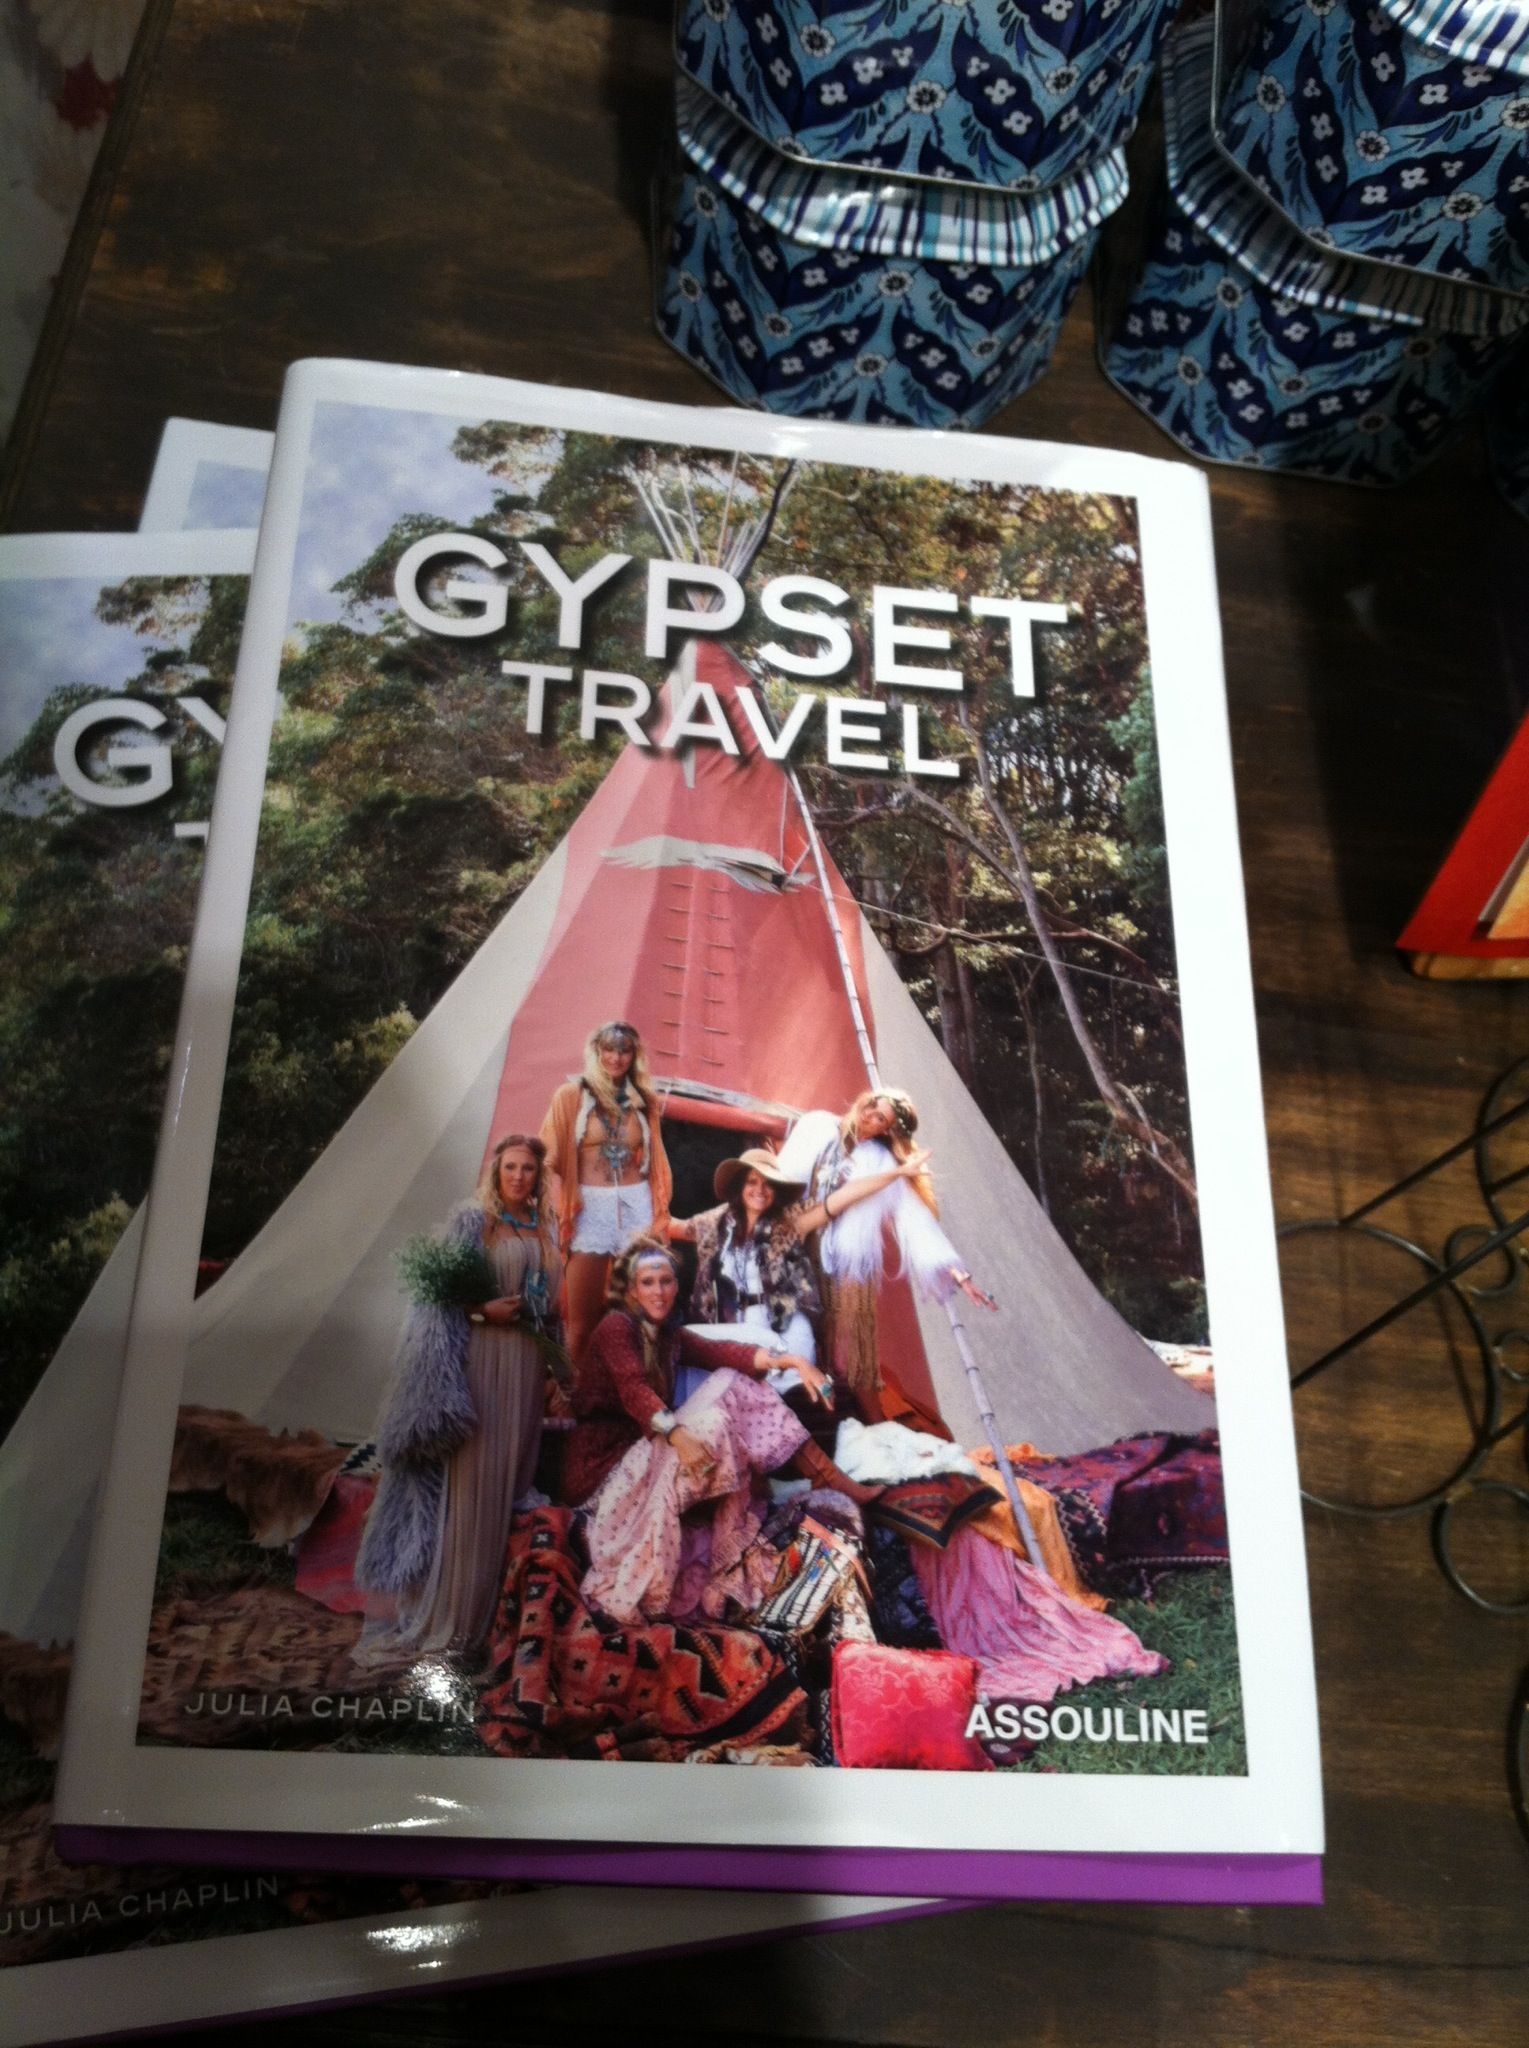 Pin by Ami Utley on AJ Gypset travel, Book cover, Travel